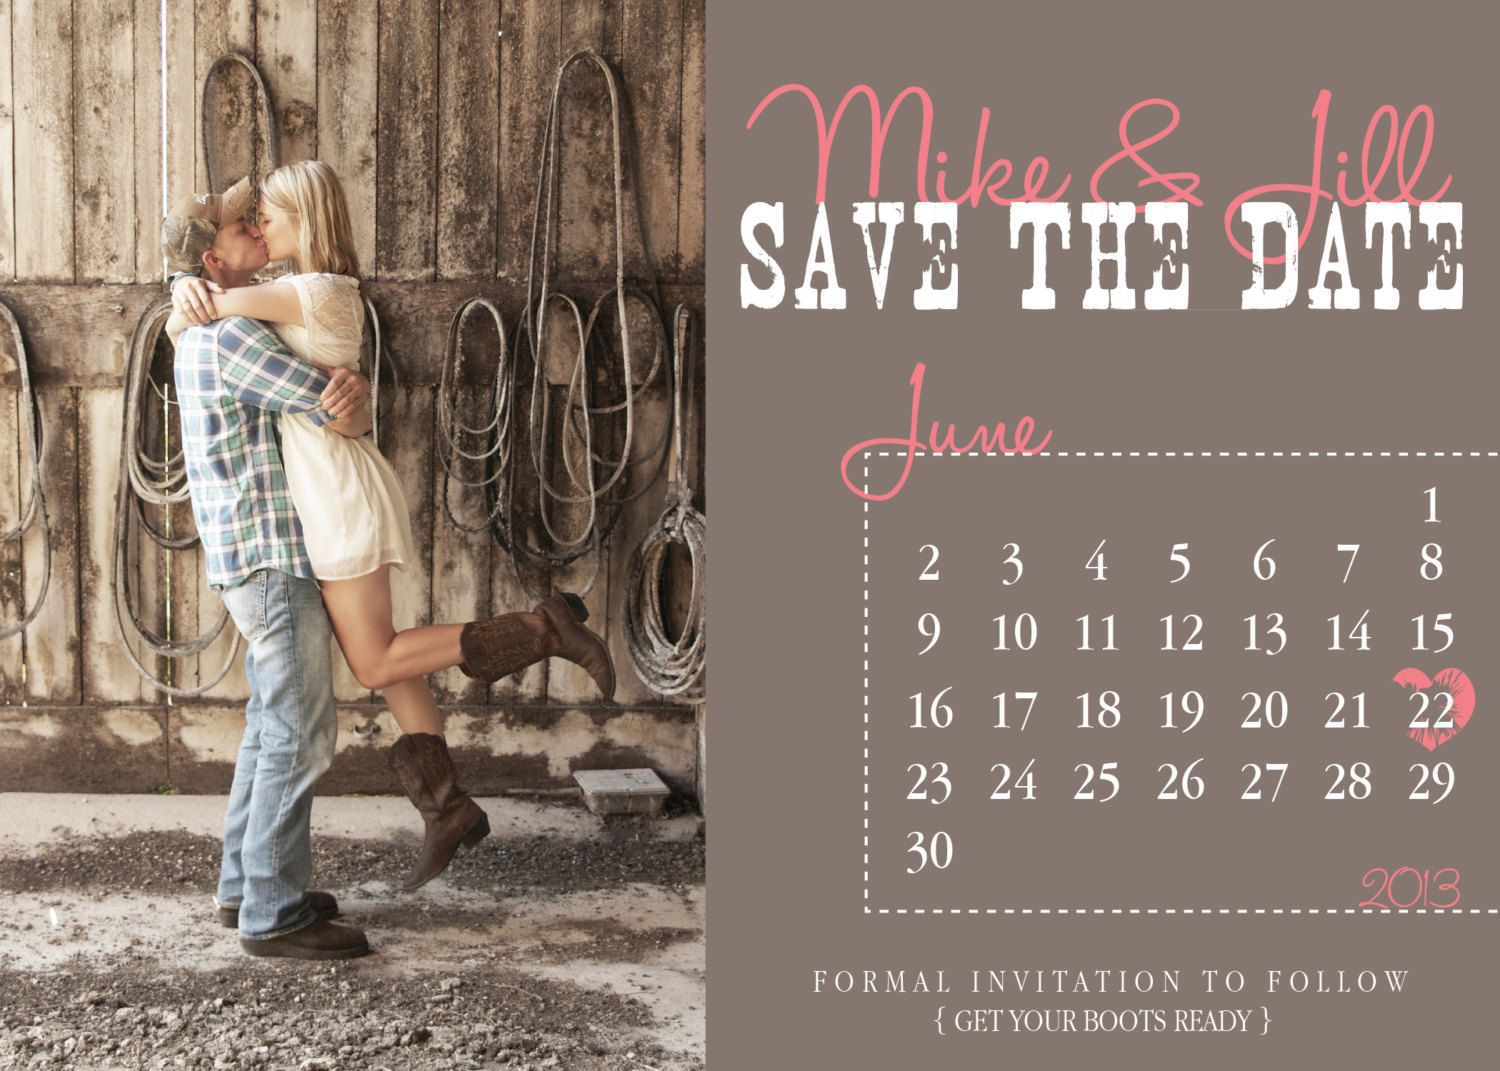 country save the dates | Country Calendar Save The Date Wedding ...